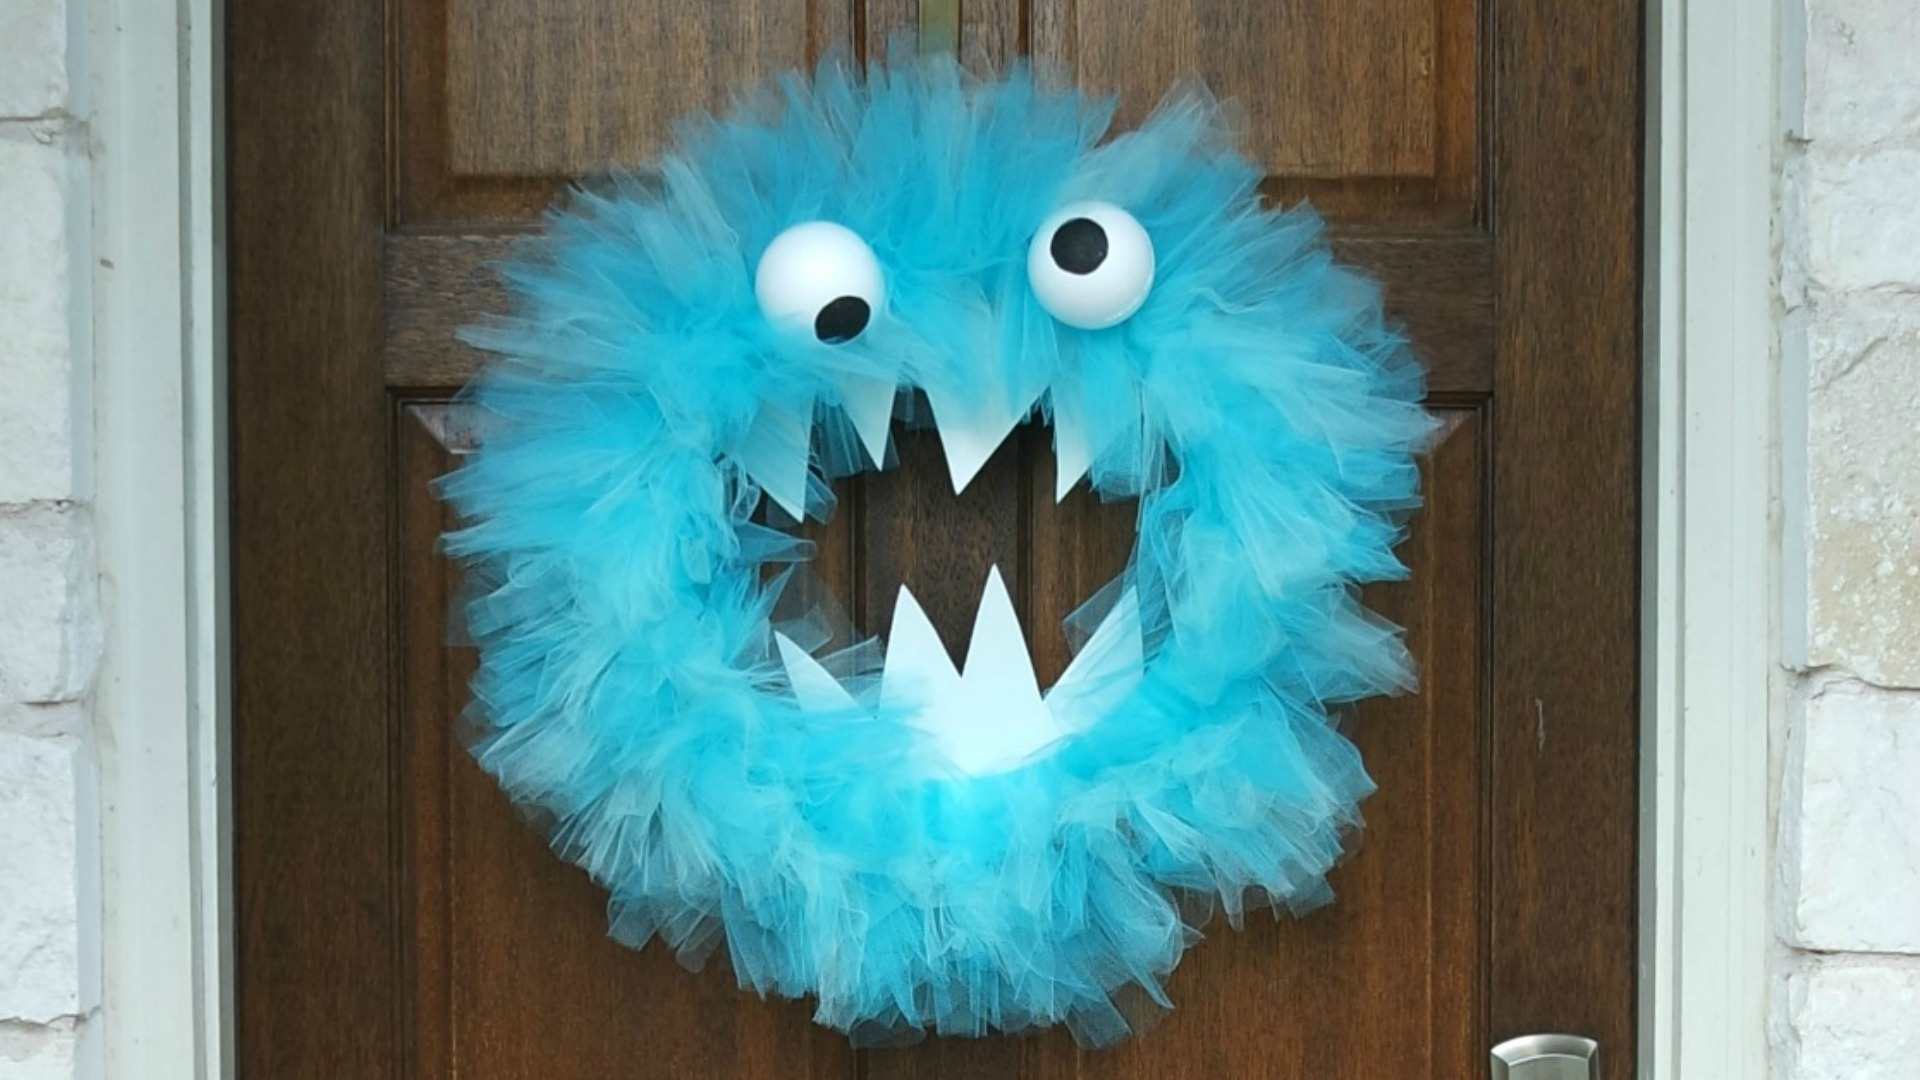 How to Make a Halloween Wreath With Tulle // Step-by-step instructions for a Halloween tulle wreath.